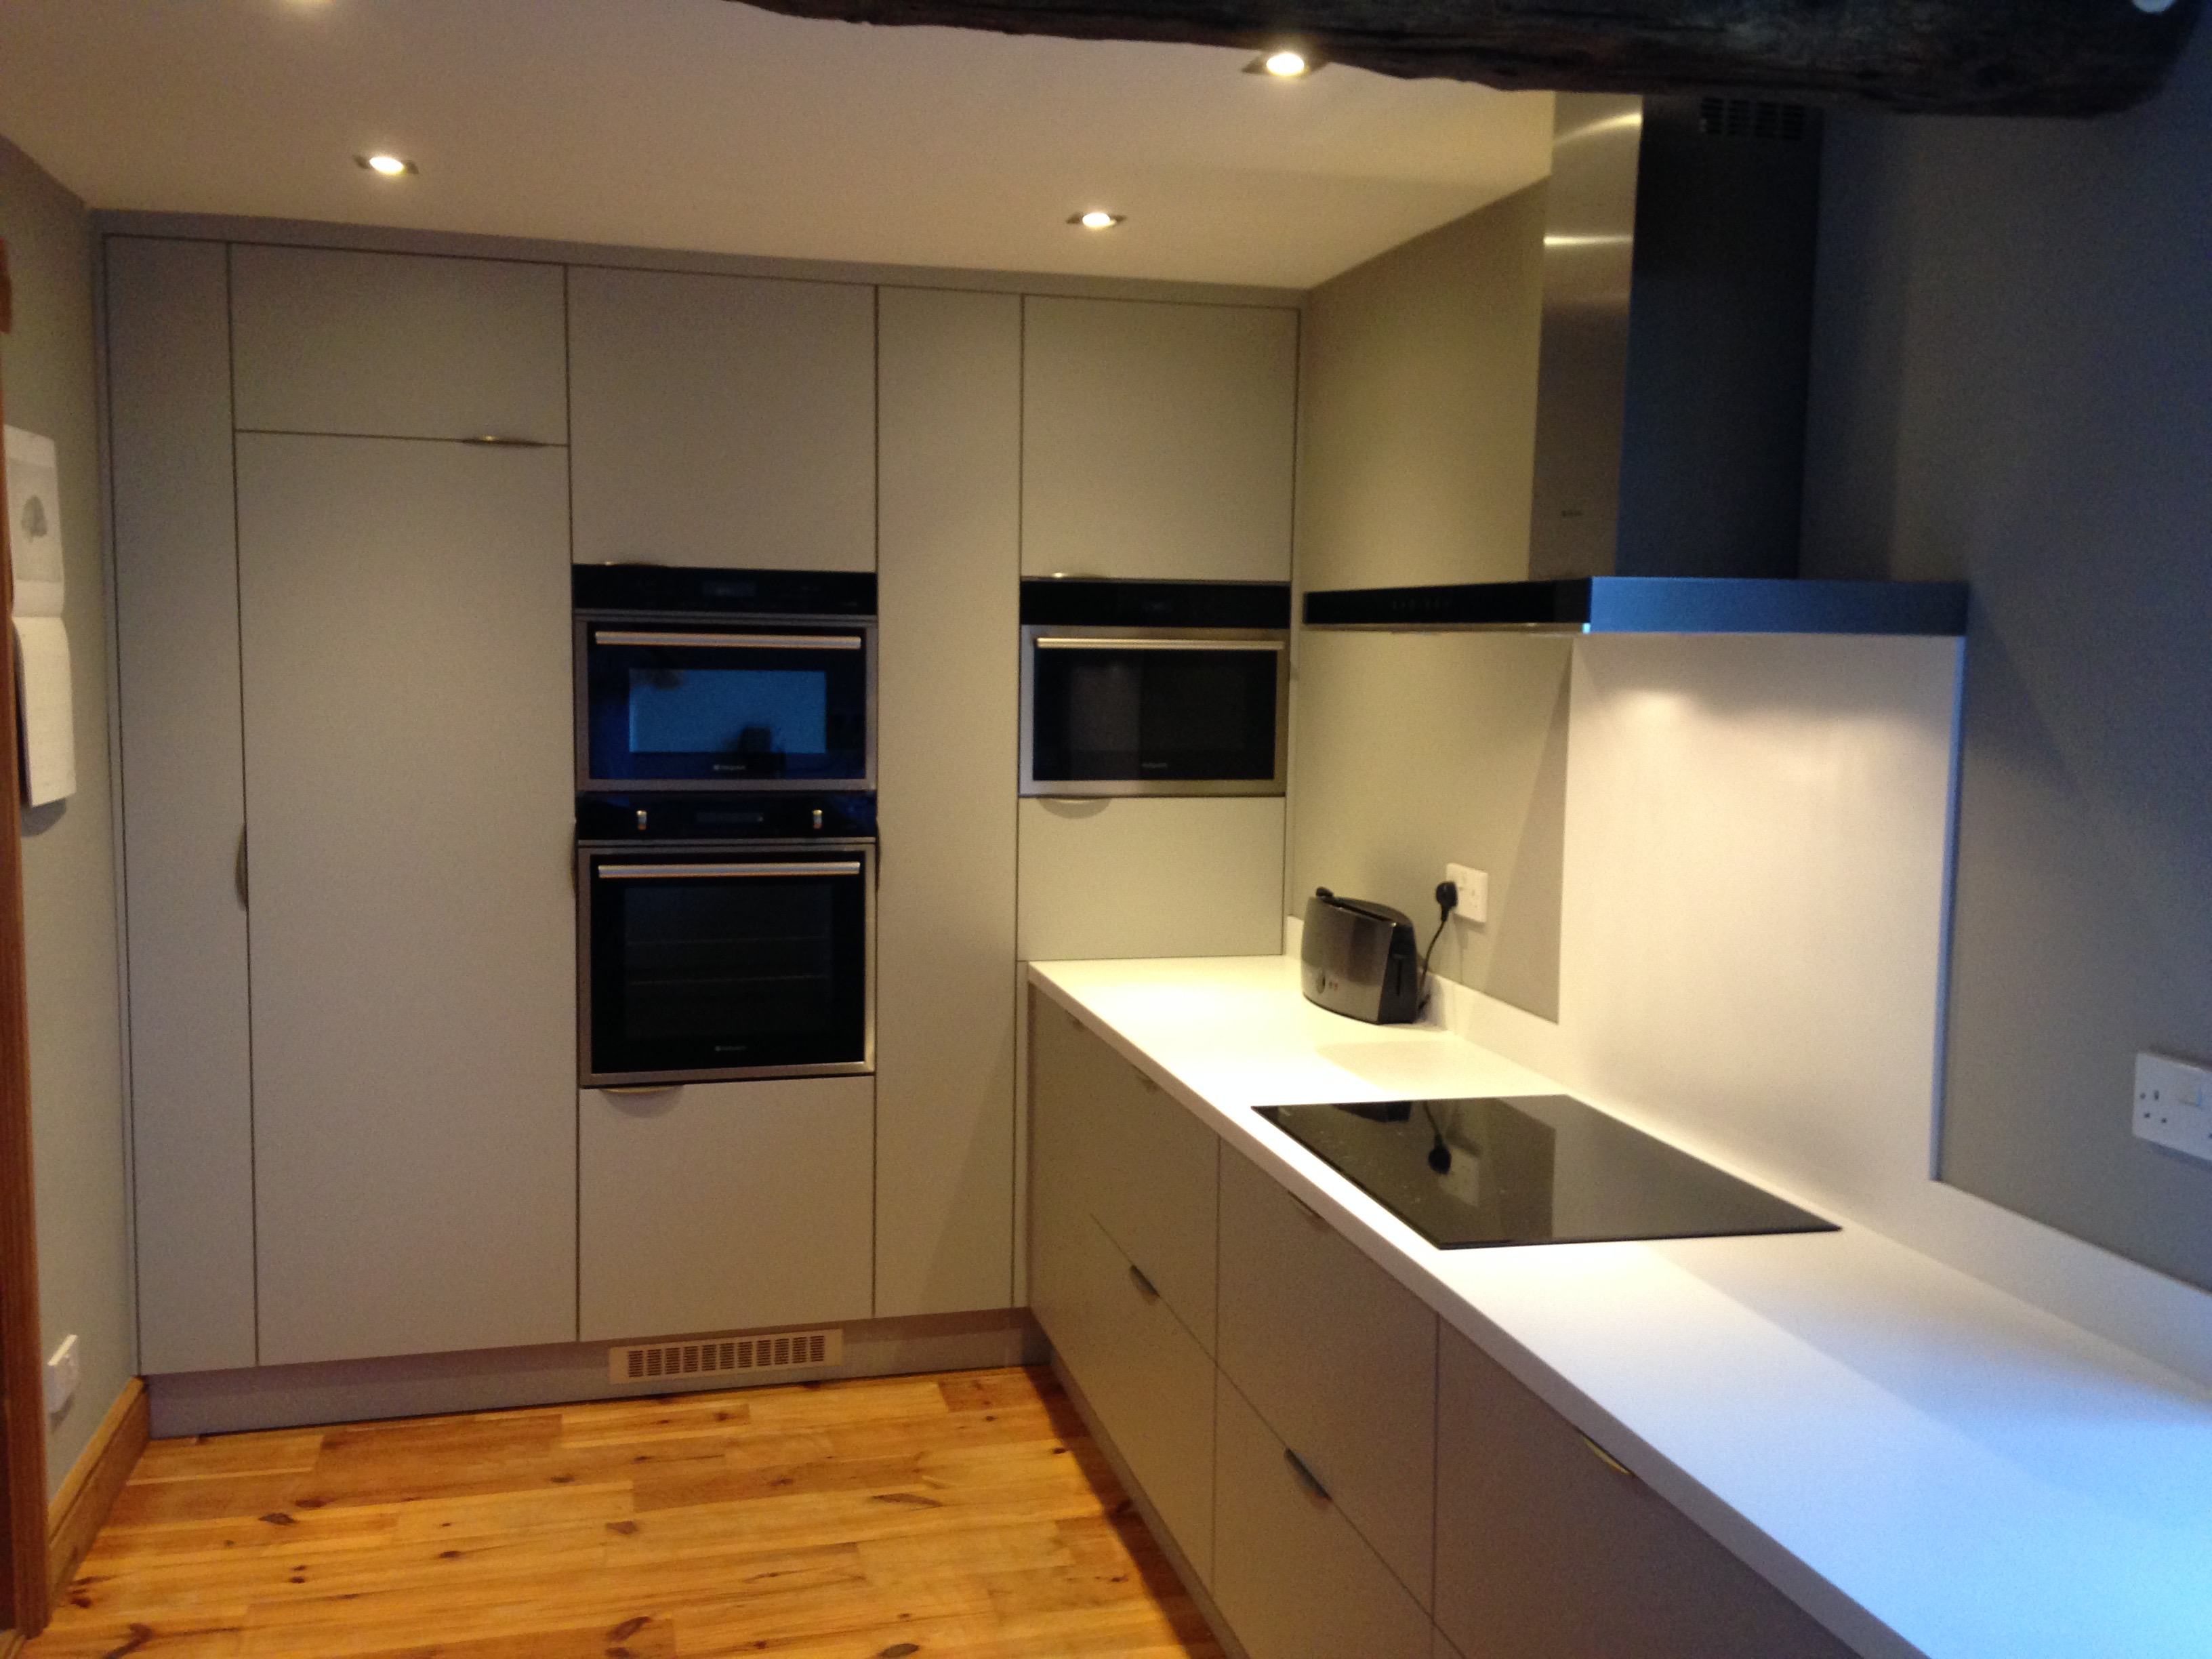 Luxury Fitted Kitchen In Halifax, supermatt grey doors and Corian worktop